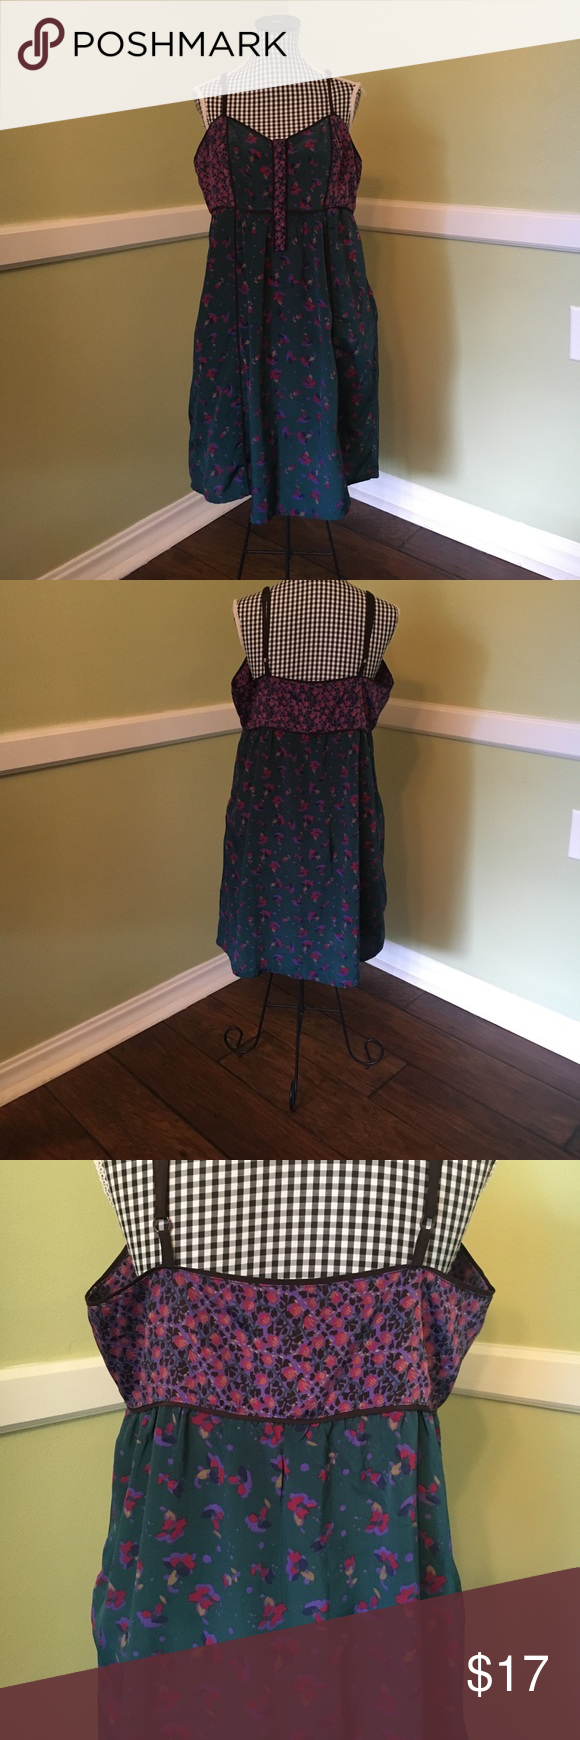 Women's small Ecote' by Urban Outfitters dress EUC and never worn women's small Ecote' dress by Urban Outfitters   100% polyester and lightweight fabric make for the perfect spring time look!   Dress features hues of green and purples, with a mesmerizing design.   Dress is in perfect condition, with adjusting spaghetti straps for multiple levels of coverage.   Dress come from a clean, smoke-free home Urban Outfitters Dresses